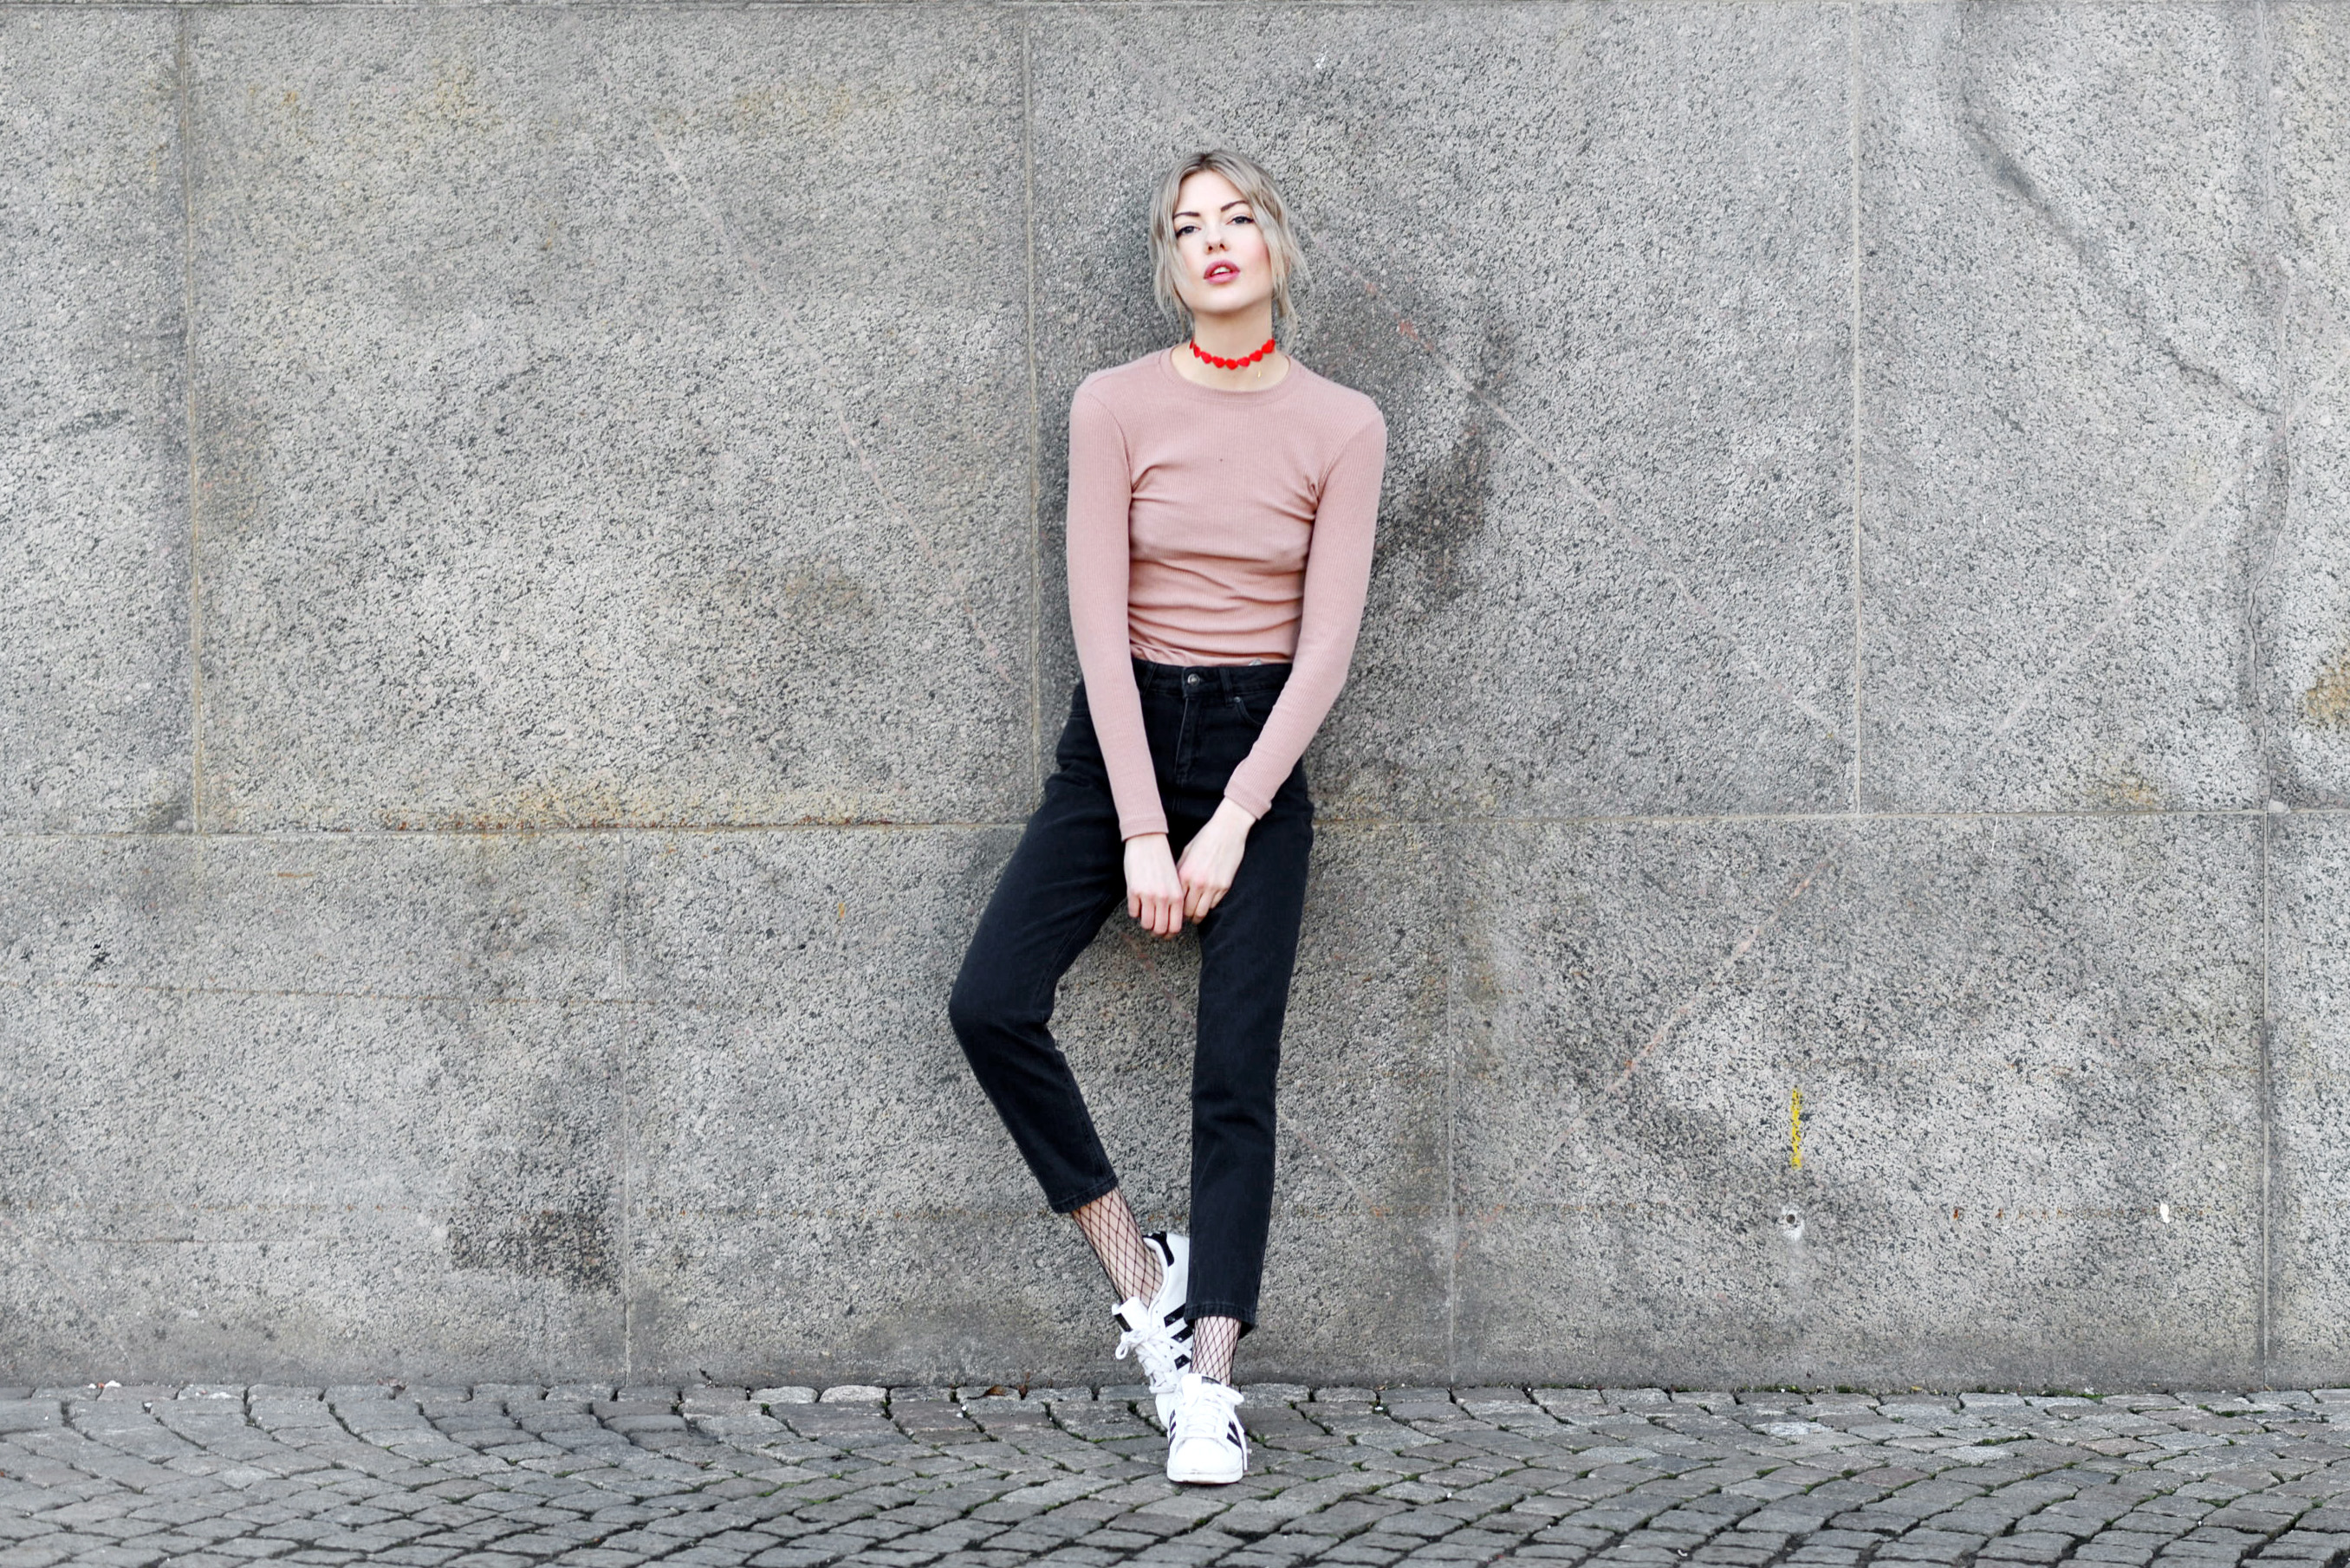 saturday outfit by ebba zingmark